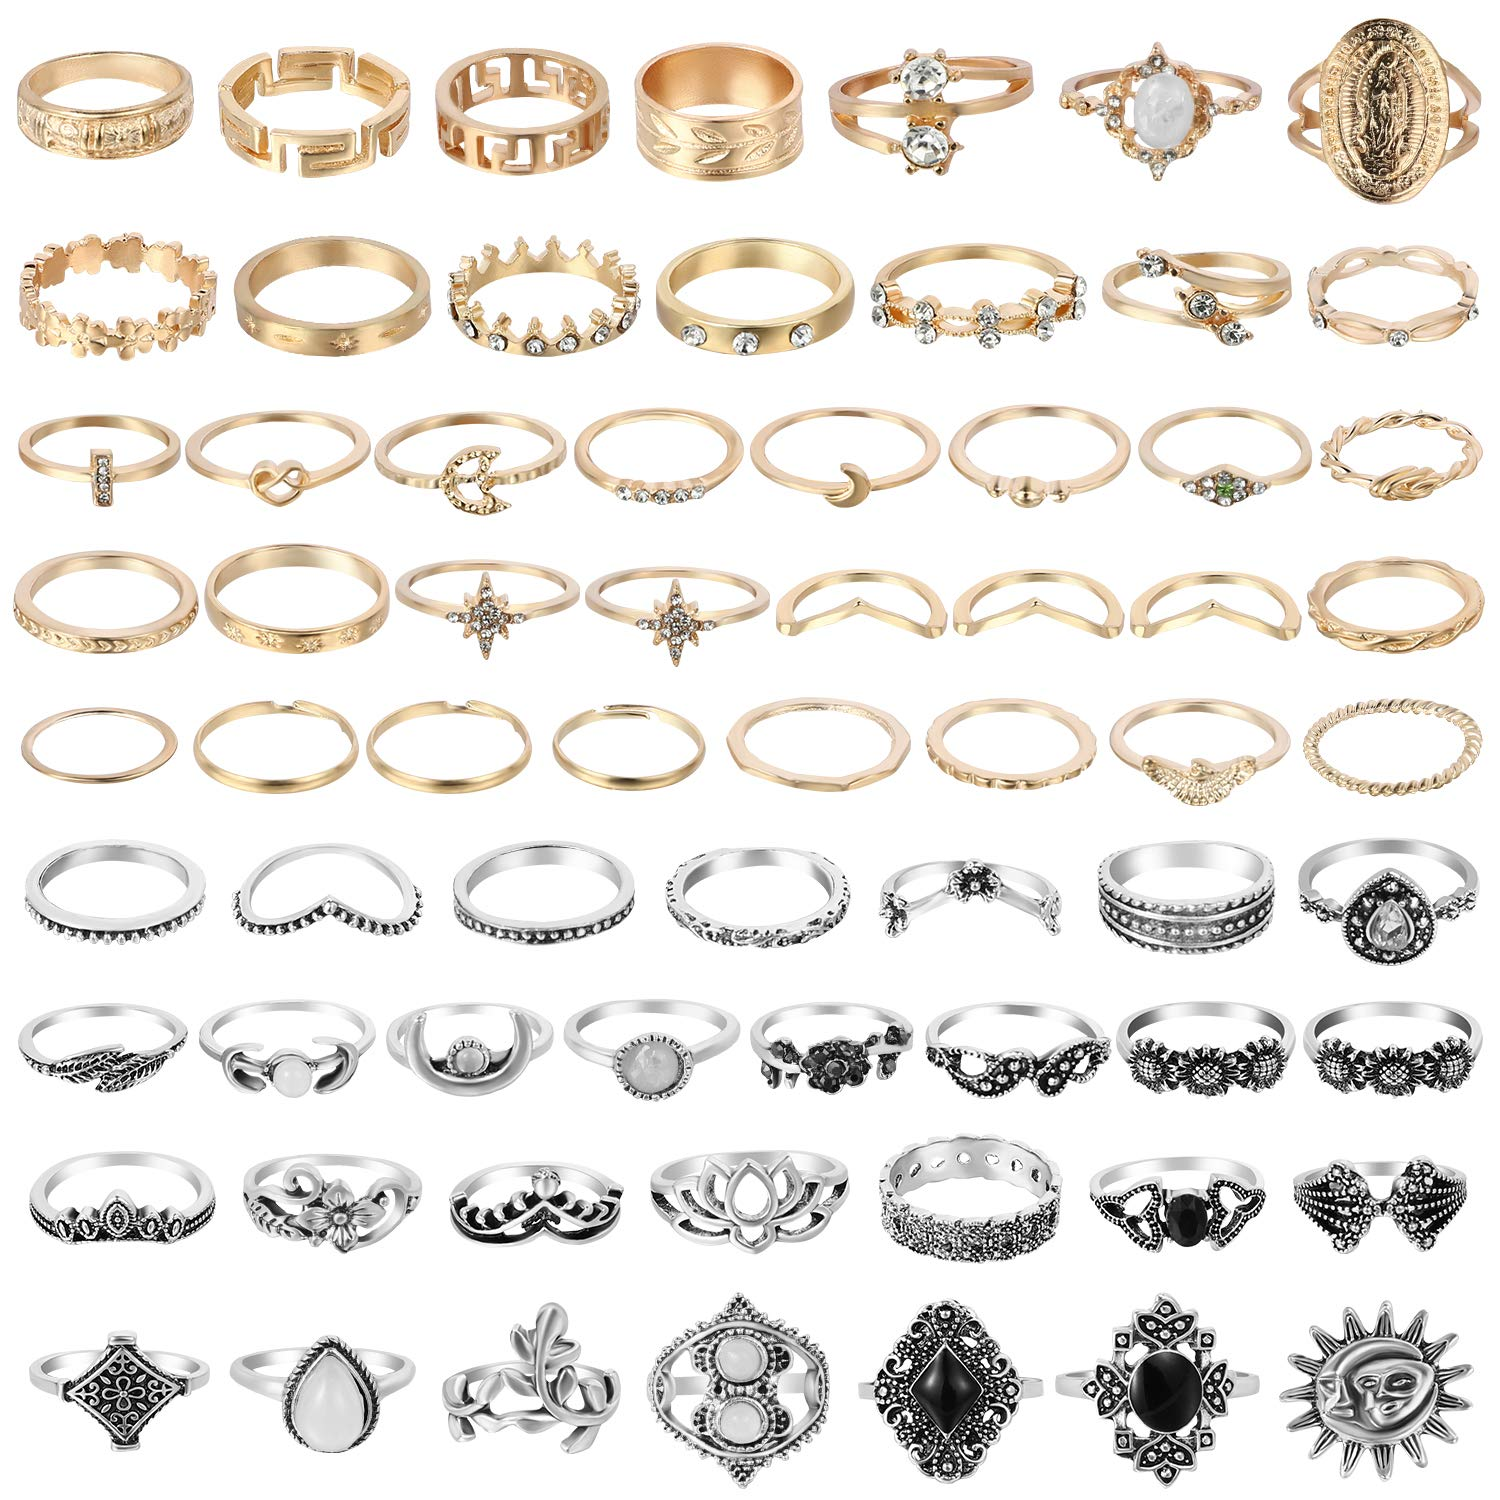 67Pcs Vintage Knuckle Rings Set Stackable Finger Rings Midi Rings for Women Bohemian Hollow Carved Flowers Gold&Silver Rings Crystal Joint Rings with Storage Bag